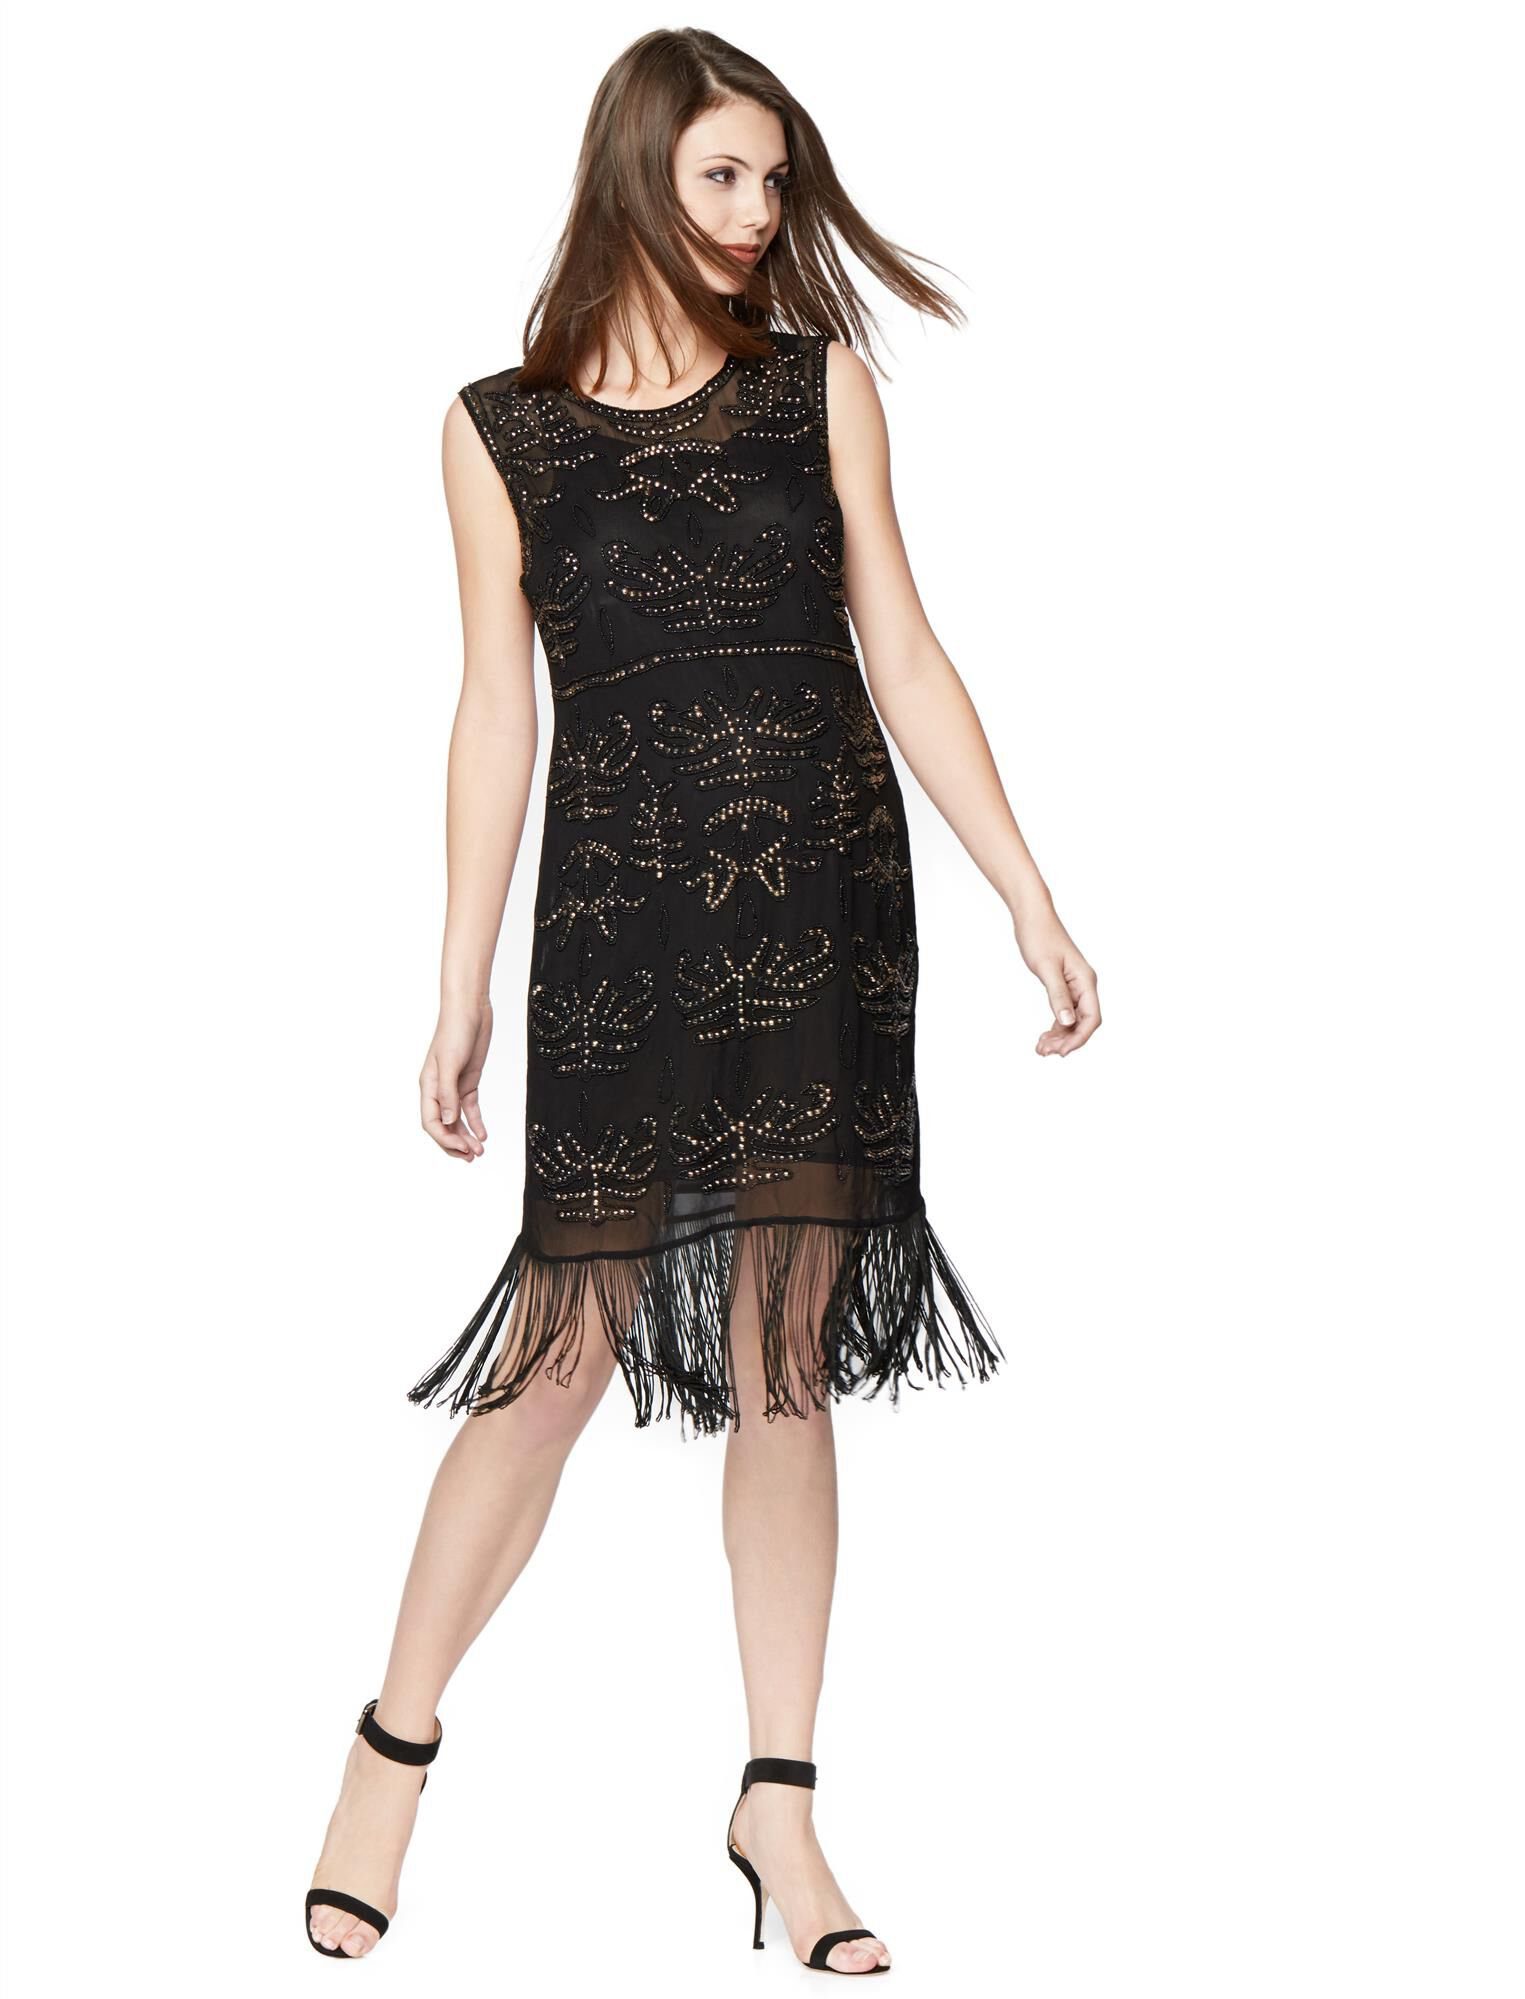 Vintage Maternity Clothing Styles 1910-1960 Fringe Hem Maternity Dress $79.97 AT vintagedancer.com